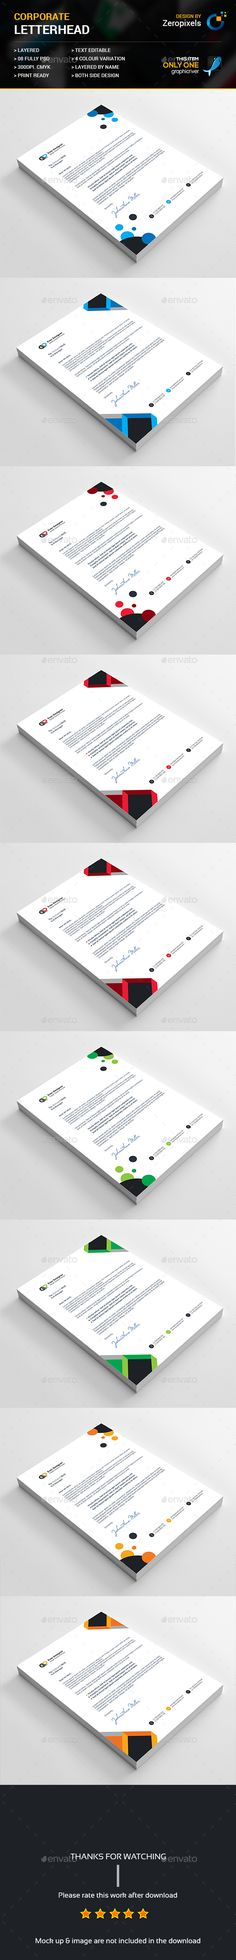 Buy Letterhead Bundle by zeropixels on GraphicRiver. Features: Easy Customizable and Editable Letterhead in with bleed CMYK Color Design in 300 DP. Letterhead Design, Letterhead Template, Letter Heads, Print Design, Graphic Design, Leaflets, Facebook Timeline Covers, Design Templates, Creative Crafts